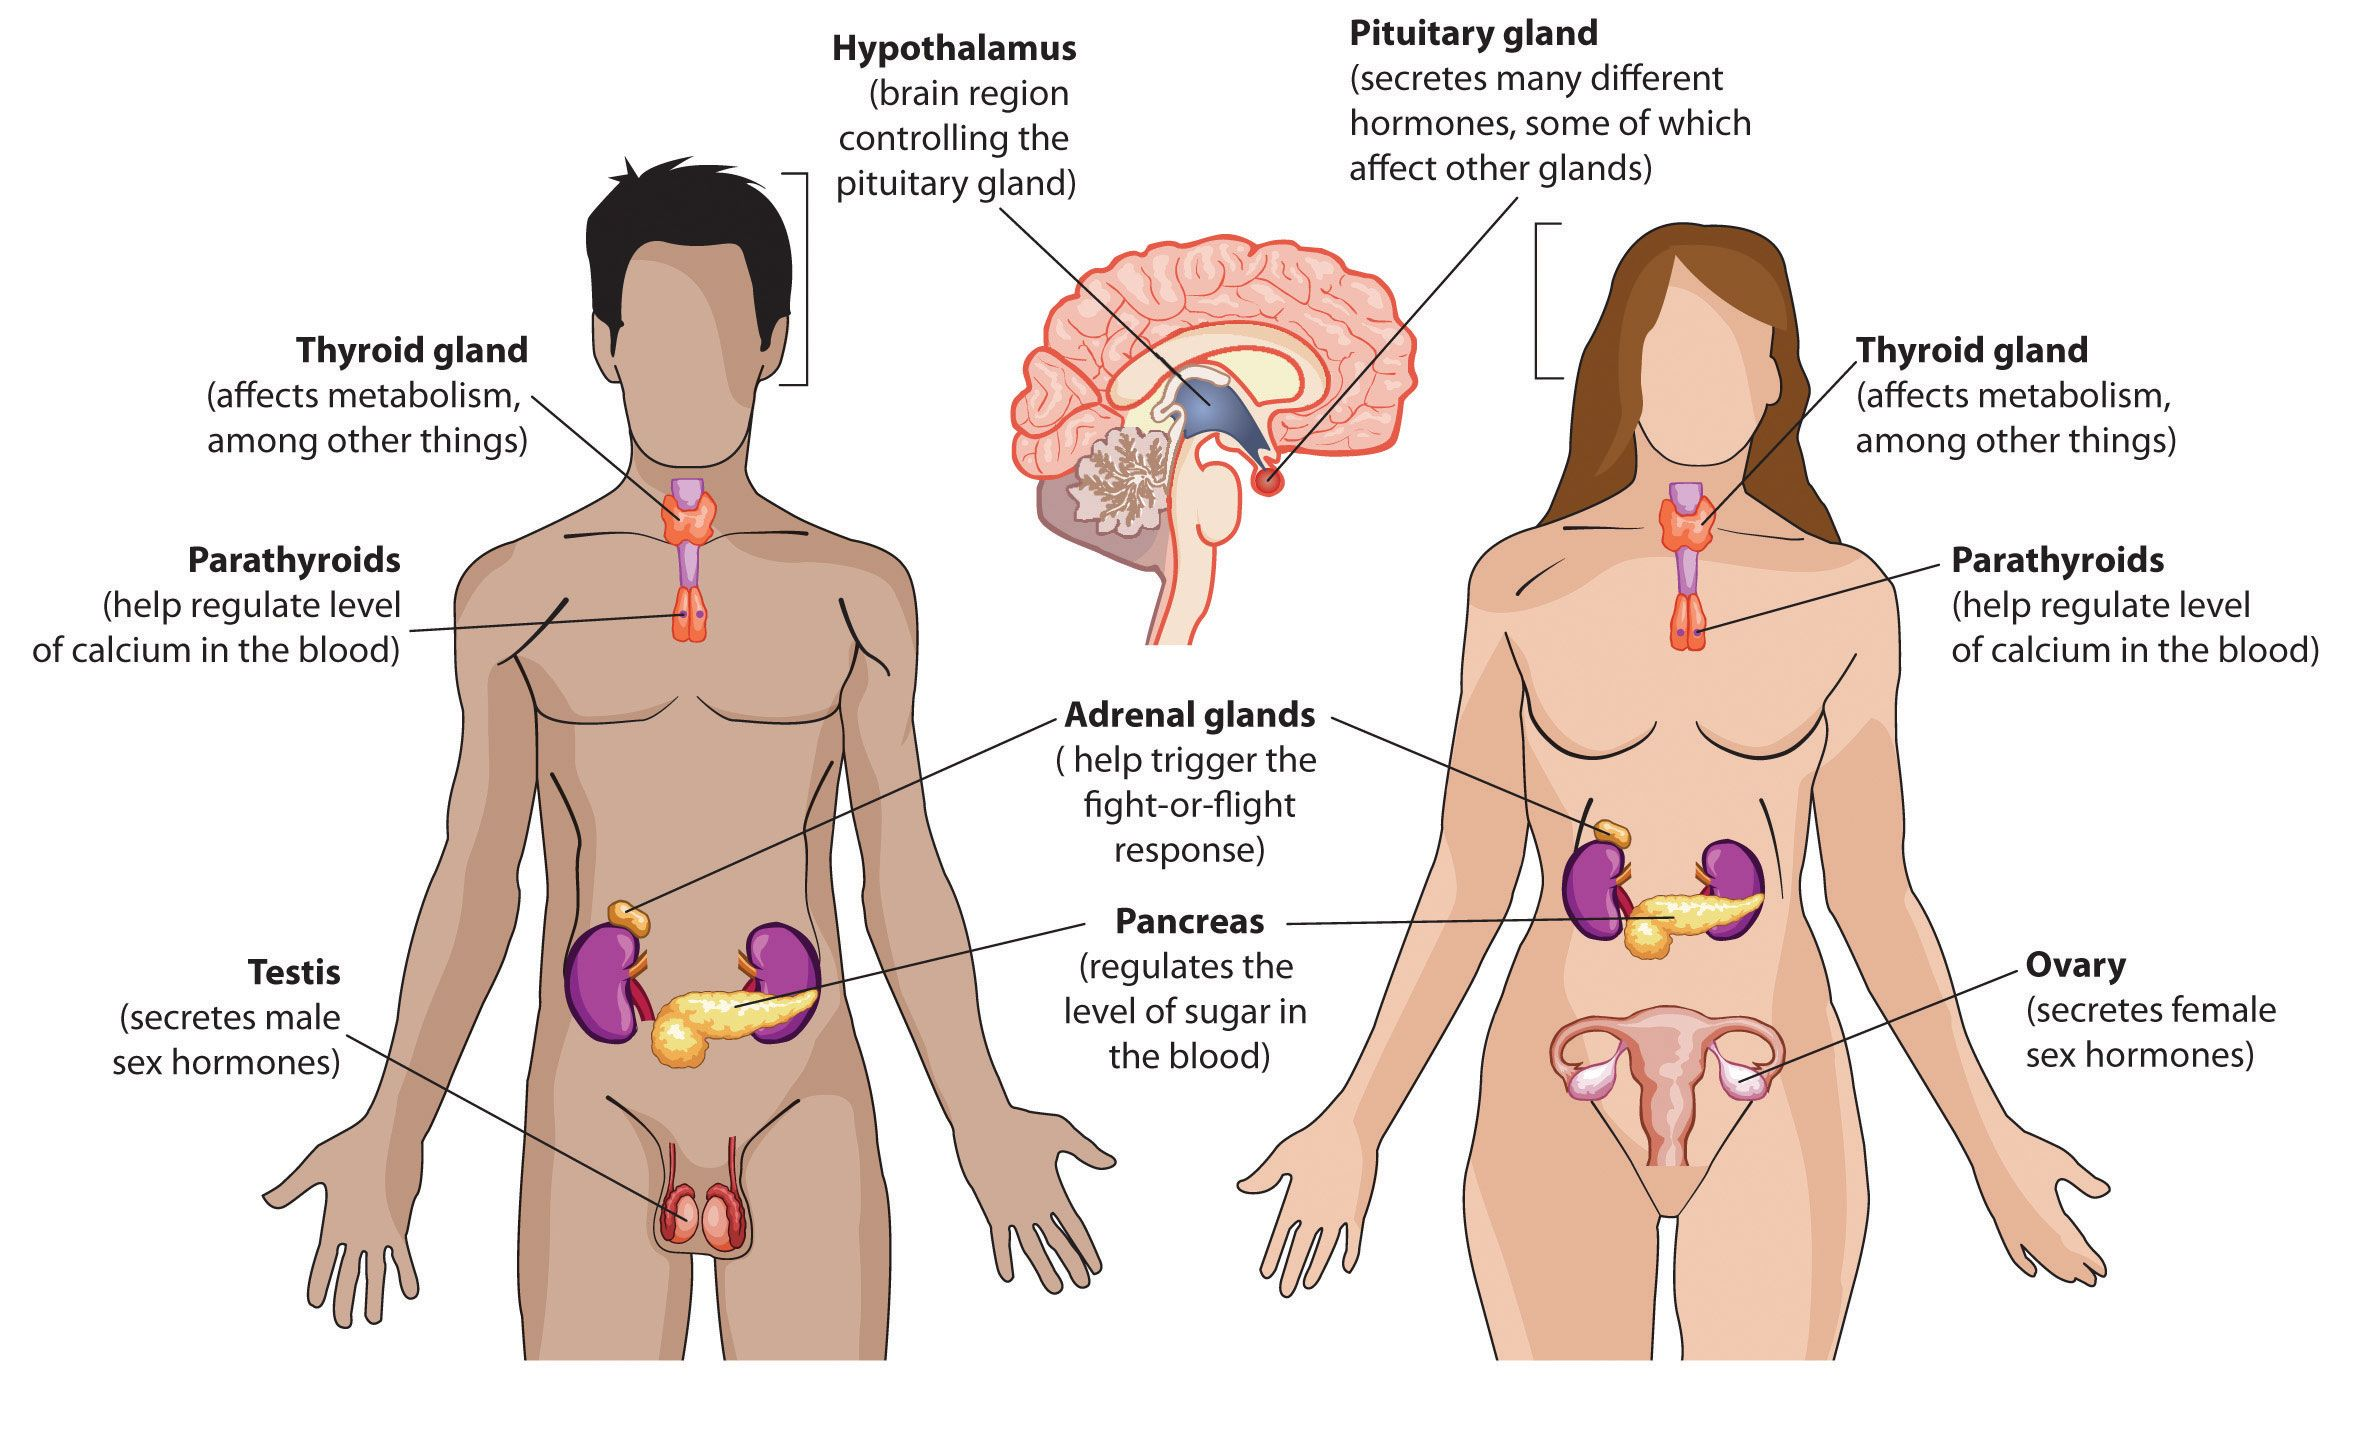 Endocrine system diagram google search sat subject test biology endocrine system diagram google search ccuart Gallery